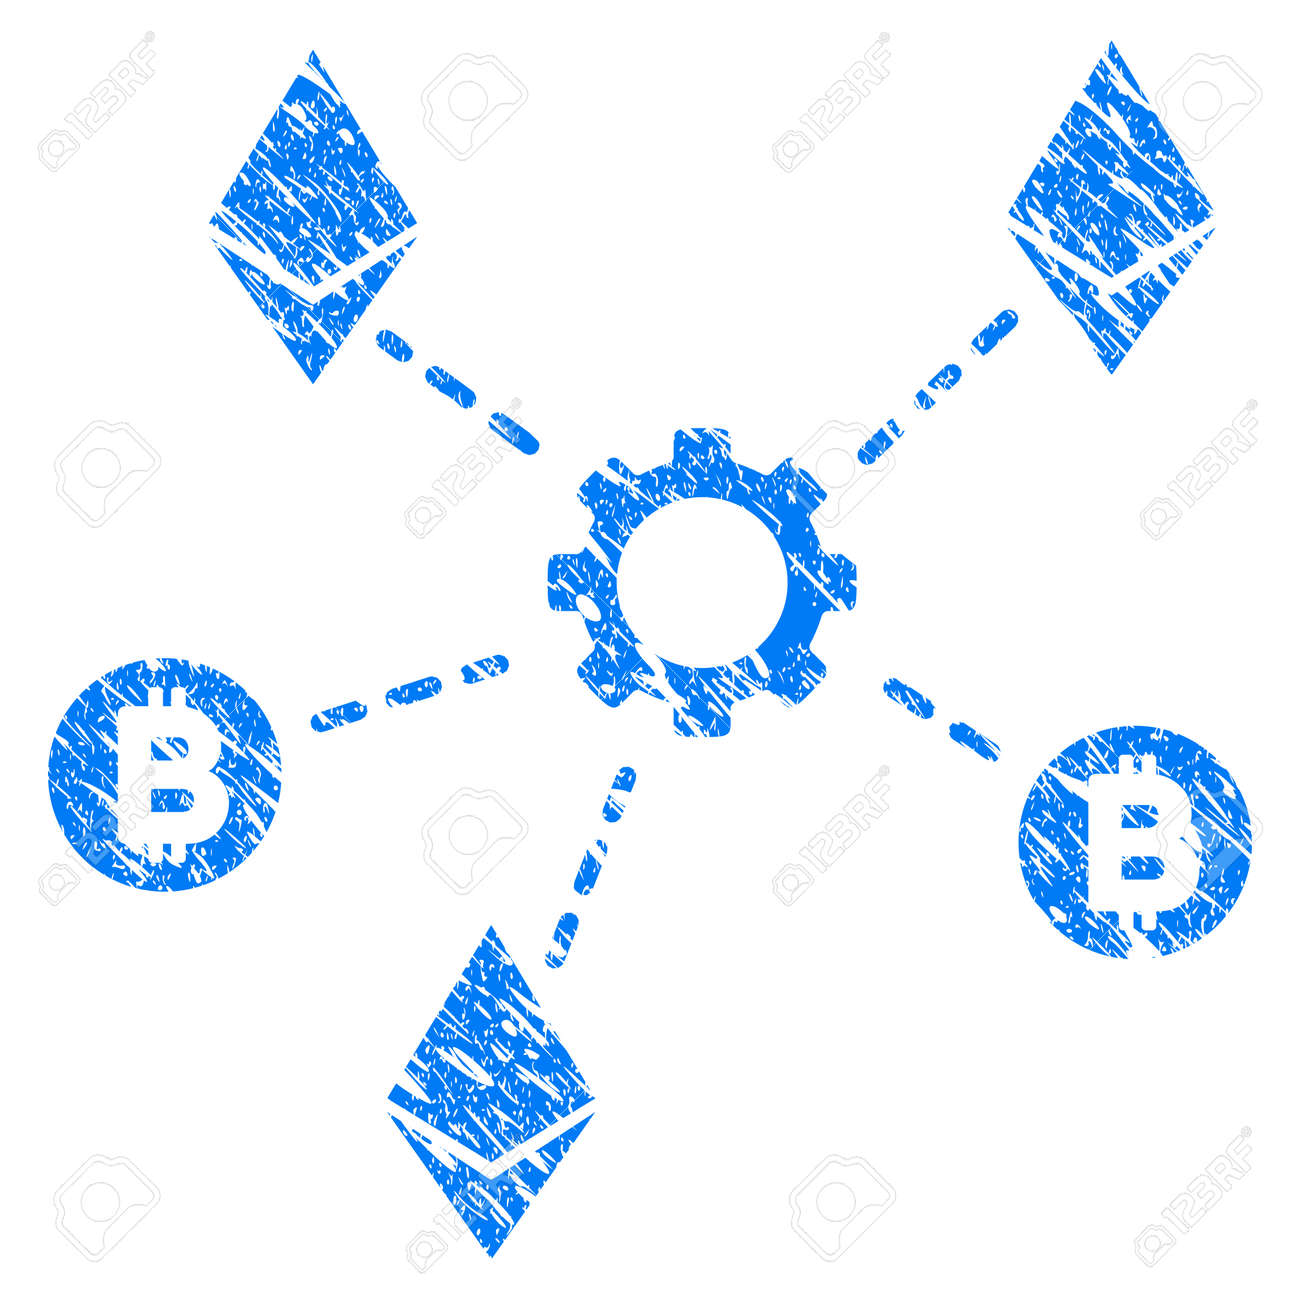 Grunge Cryptocurrency Network Nodes icon with grunge design and